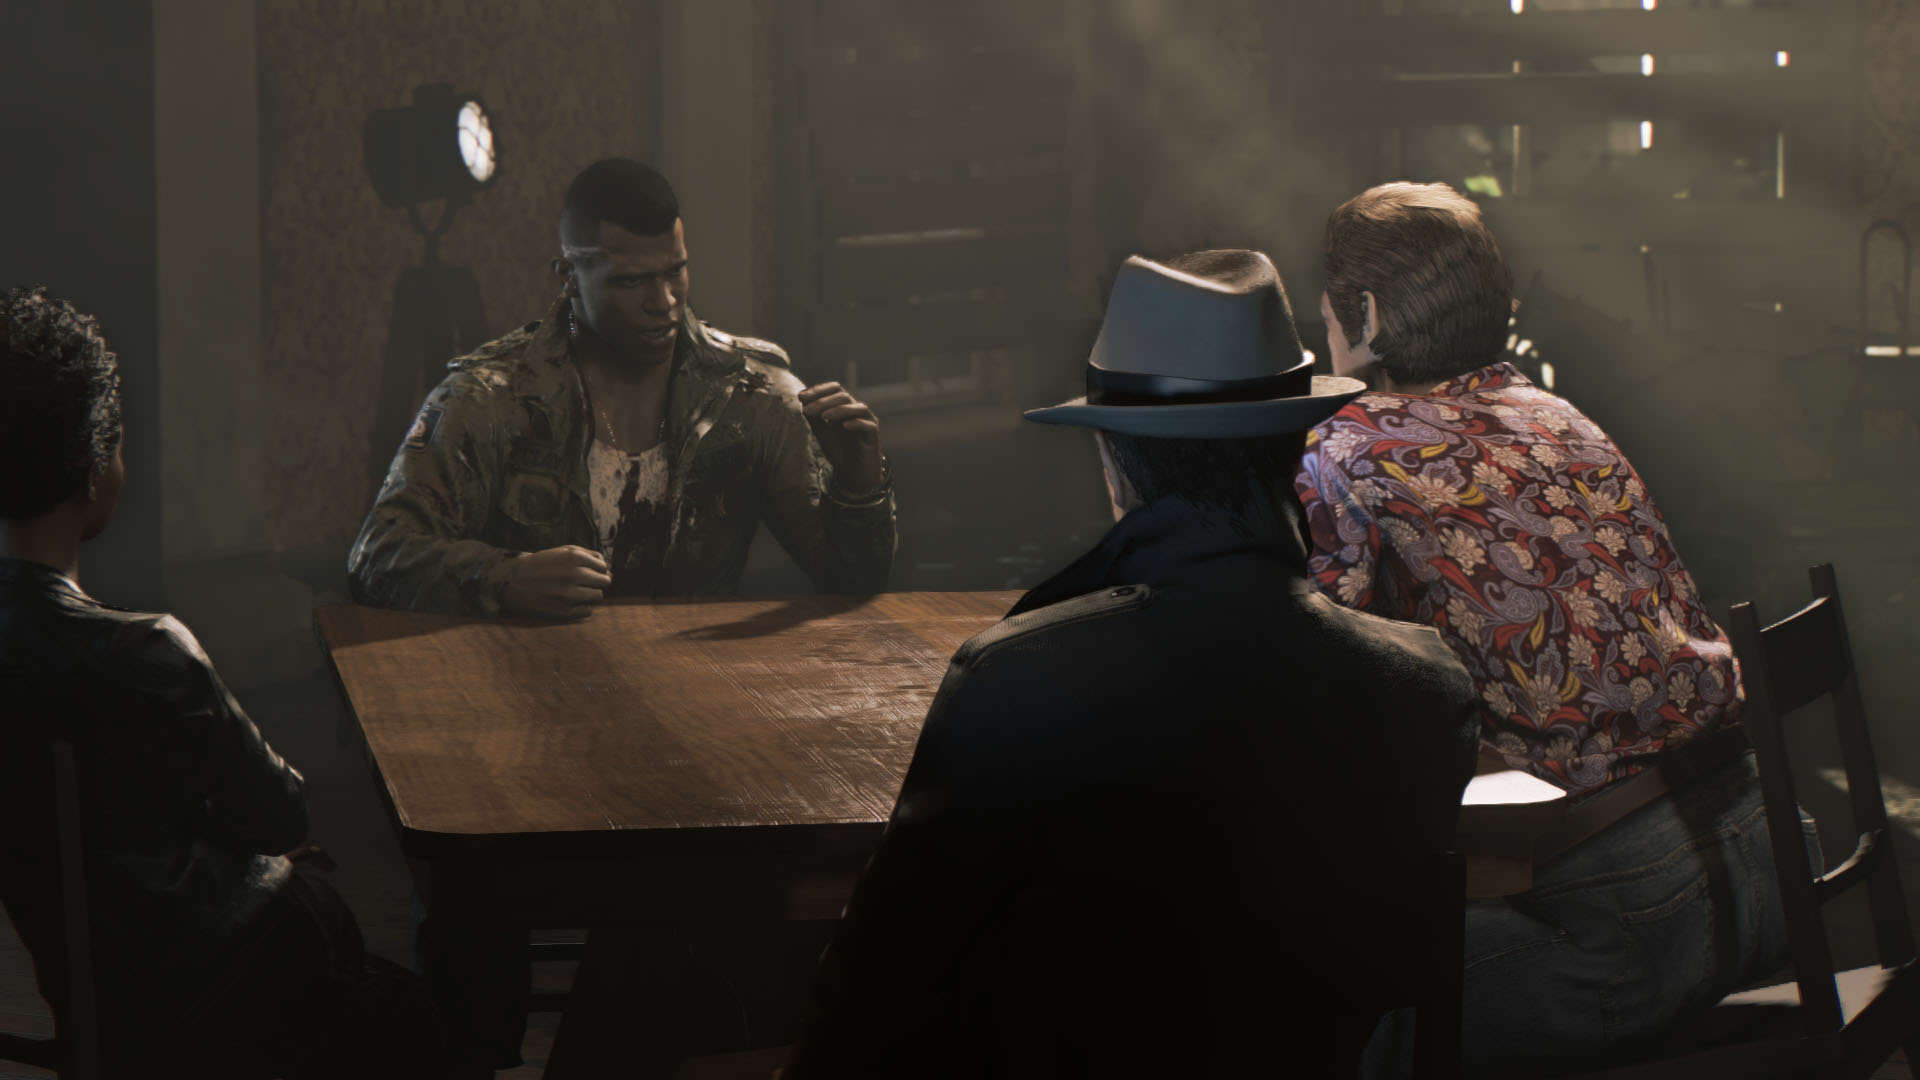 Mafia 3 Trailer Takes A Violent Tour Of New Bordeux Mafia3 SitDown